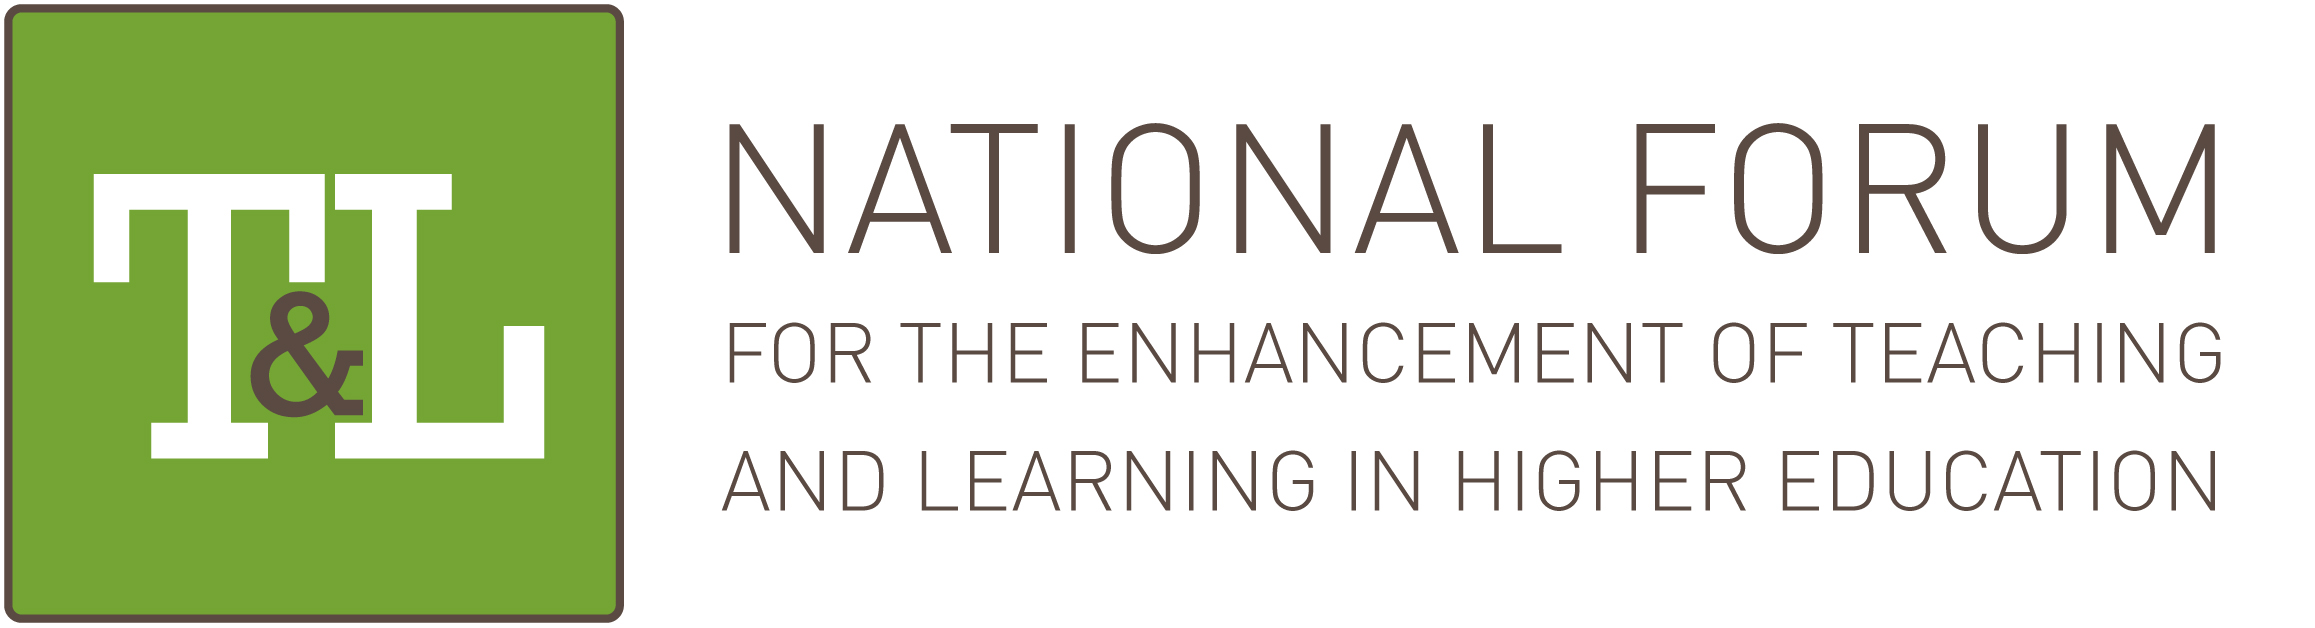 National Teaching & Learning Forum logo